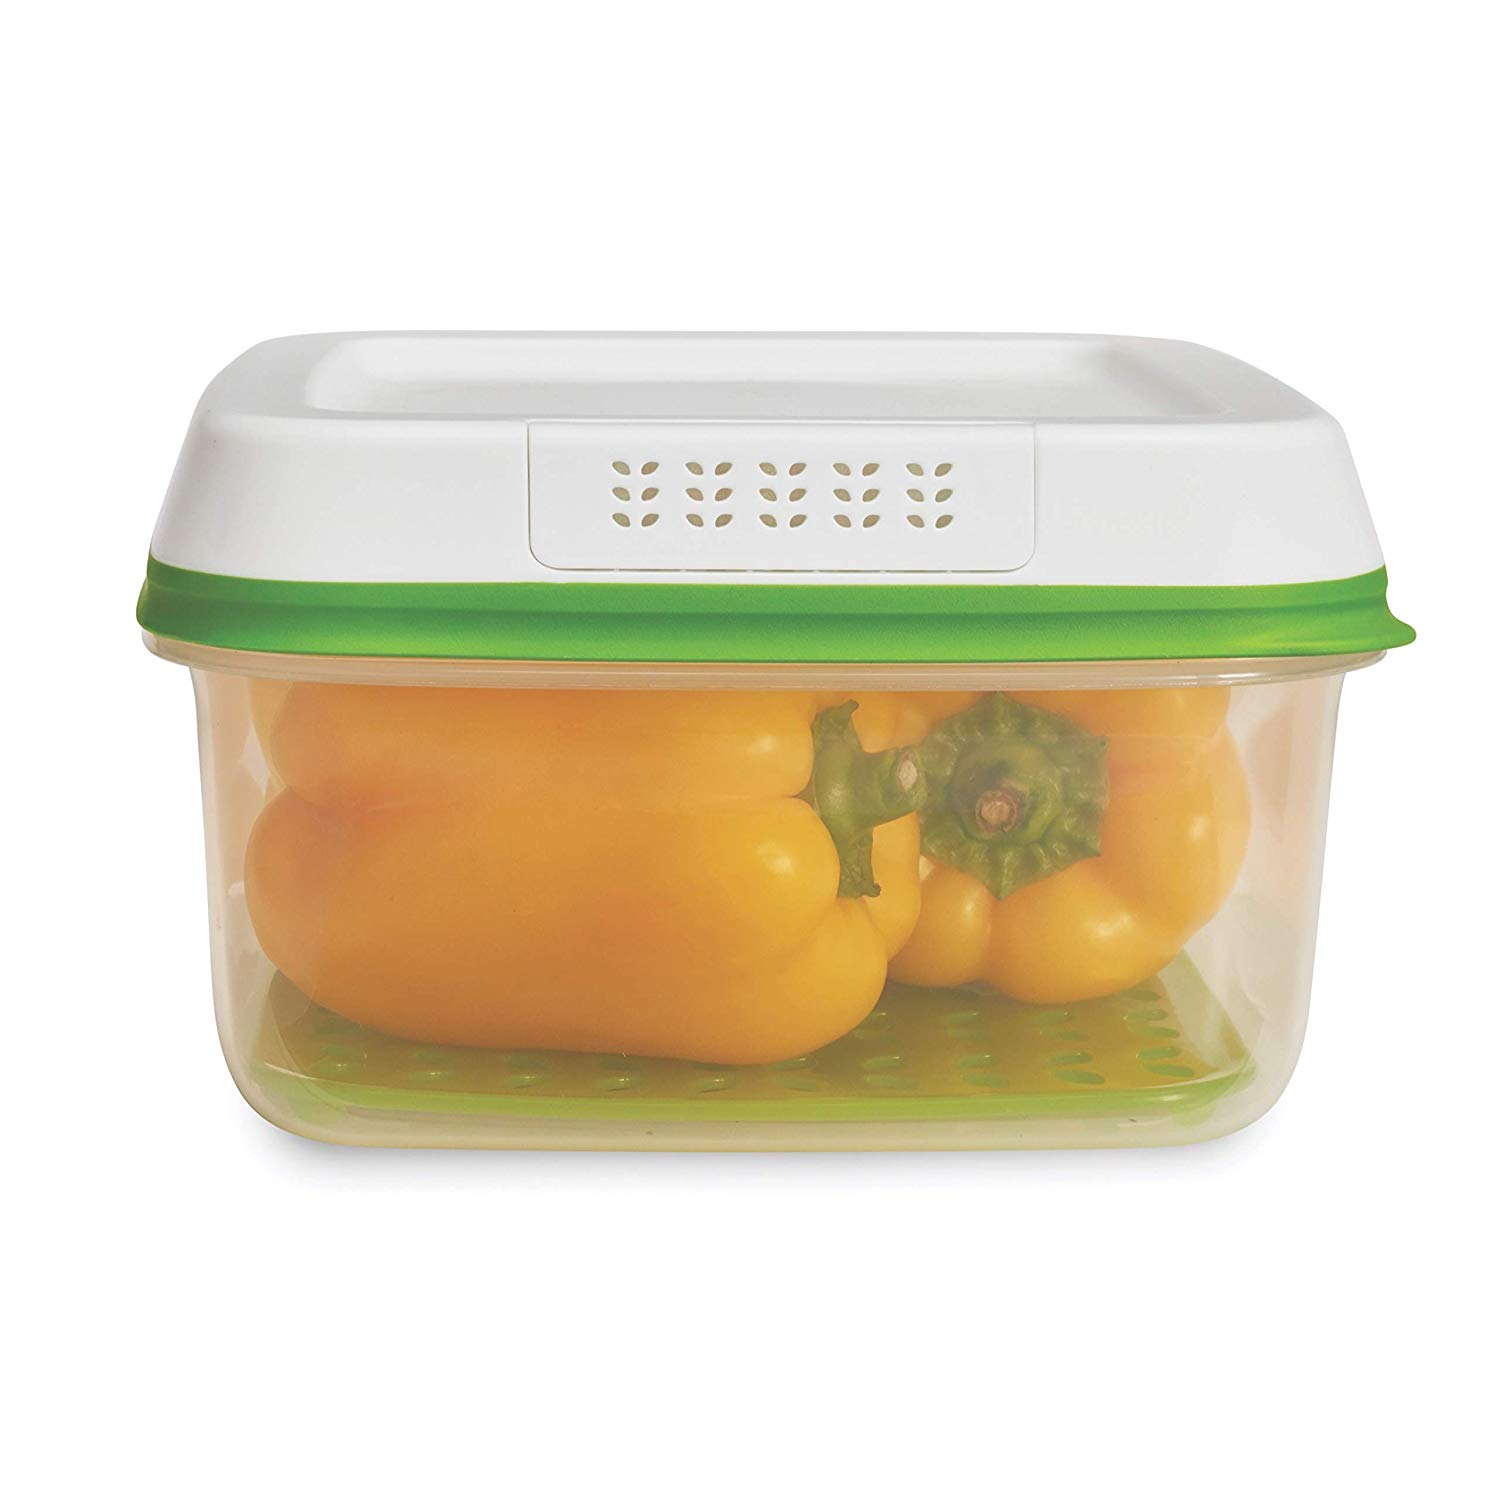 Rubbermaid FreshWorks Produce Saver 11.1 Cup Only $7.82! (reg. $15.99)